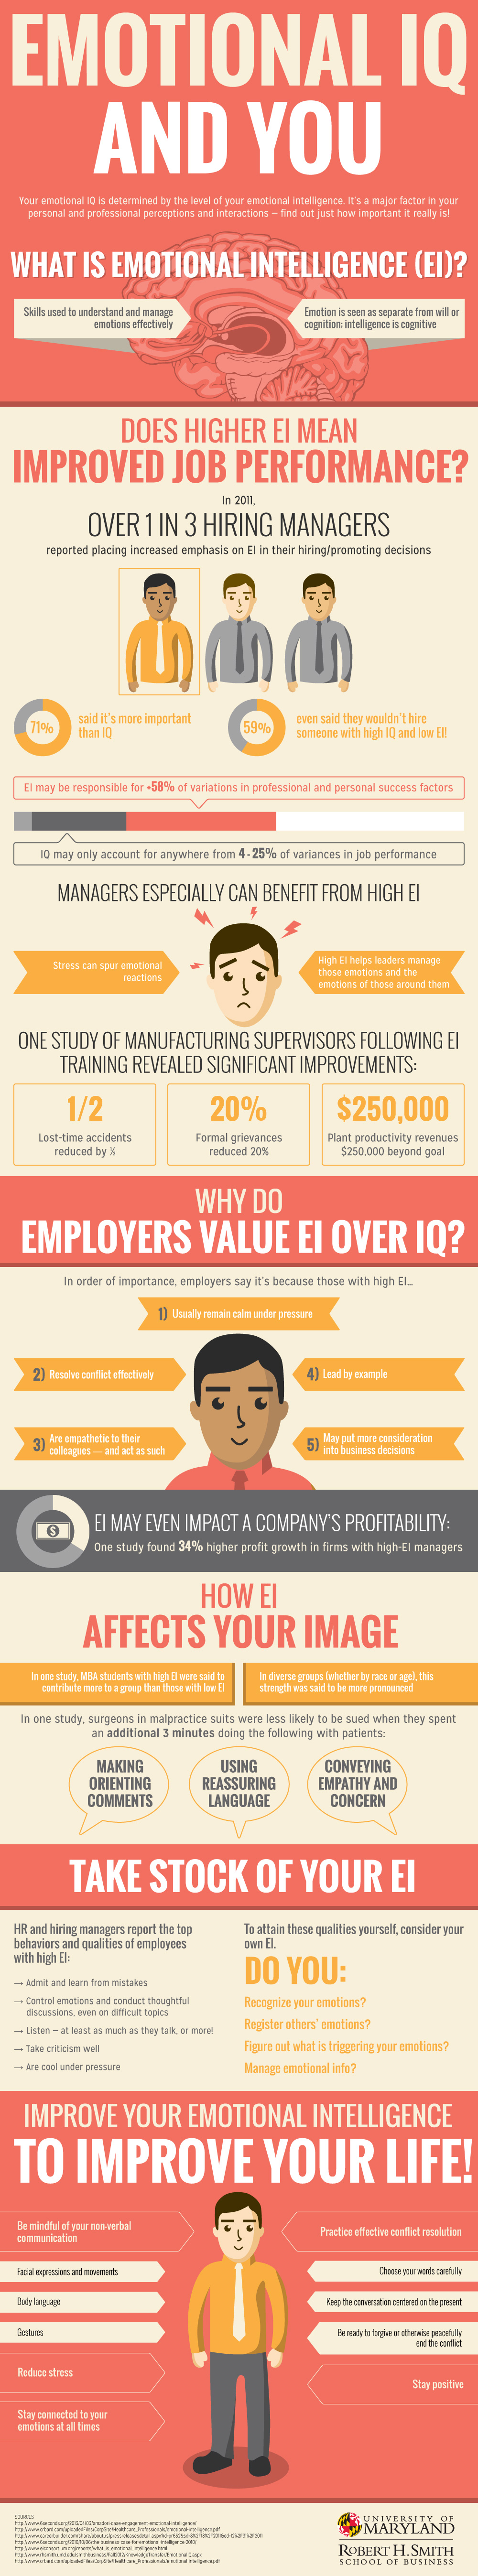 This is How Your Emotional IQ Affects All Aspects of Your Life - Infographic